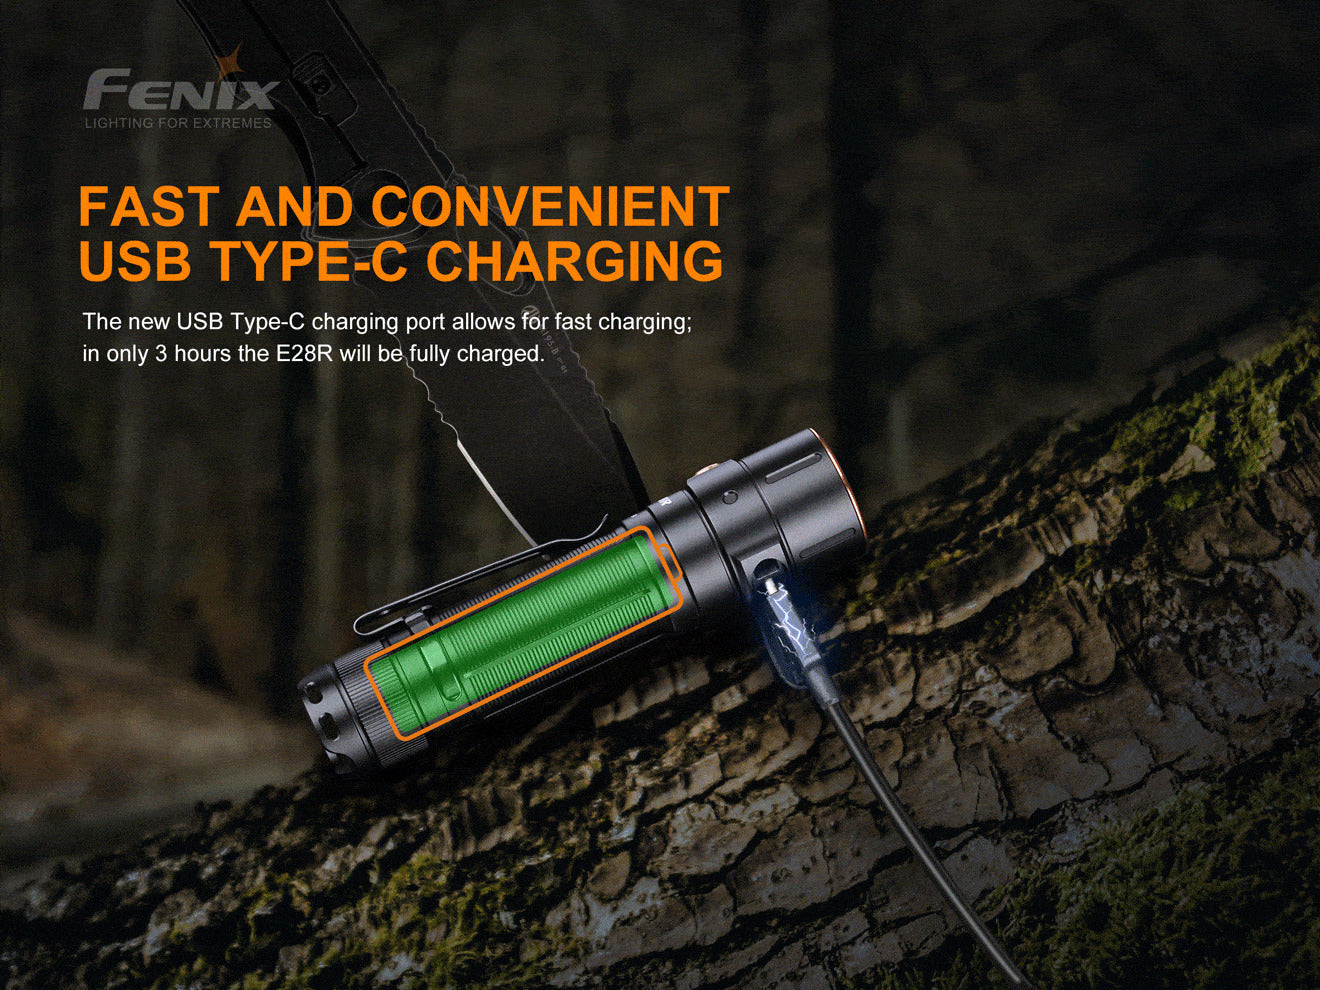 Fenix E28R Rechargeable LED Torch Light in India, Best Compact Outdoor Pocket Size Torch, Everyday Carry 1500 Lumens Flashlight at LightMen